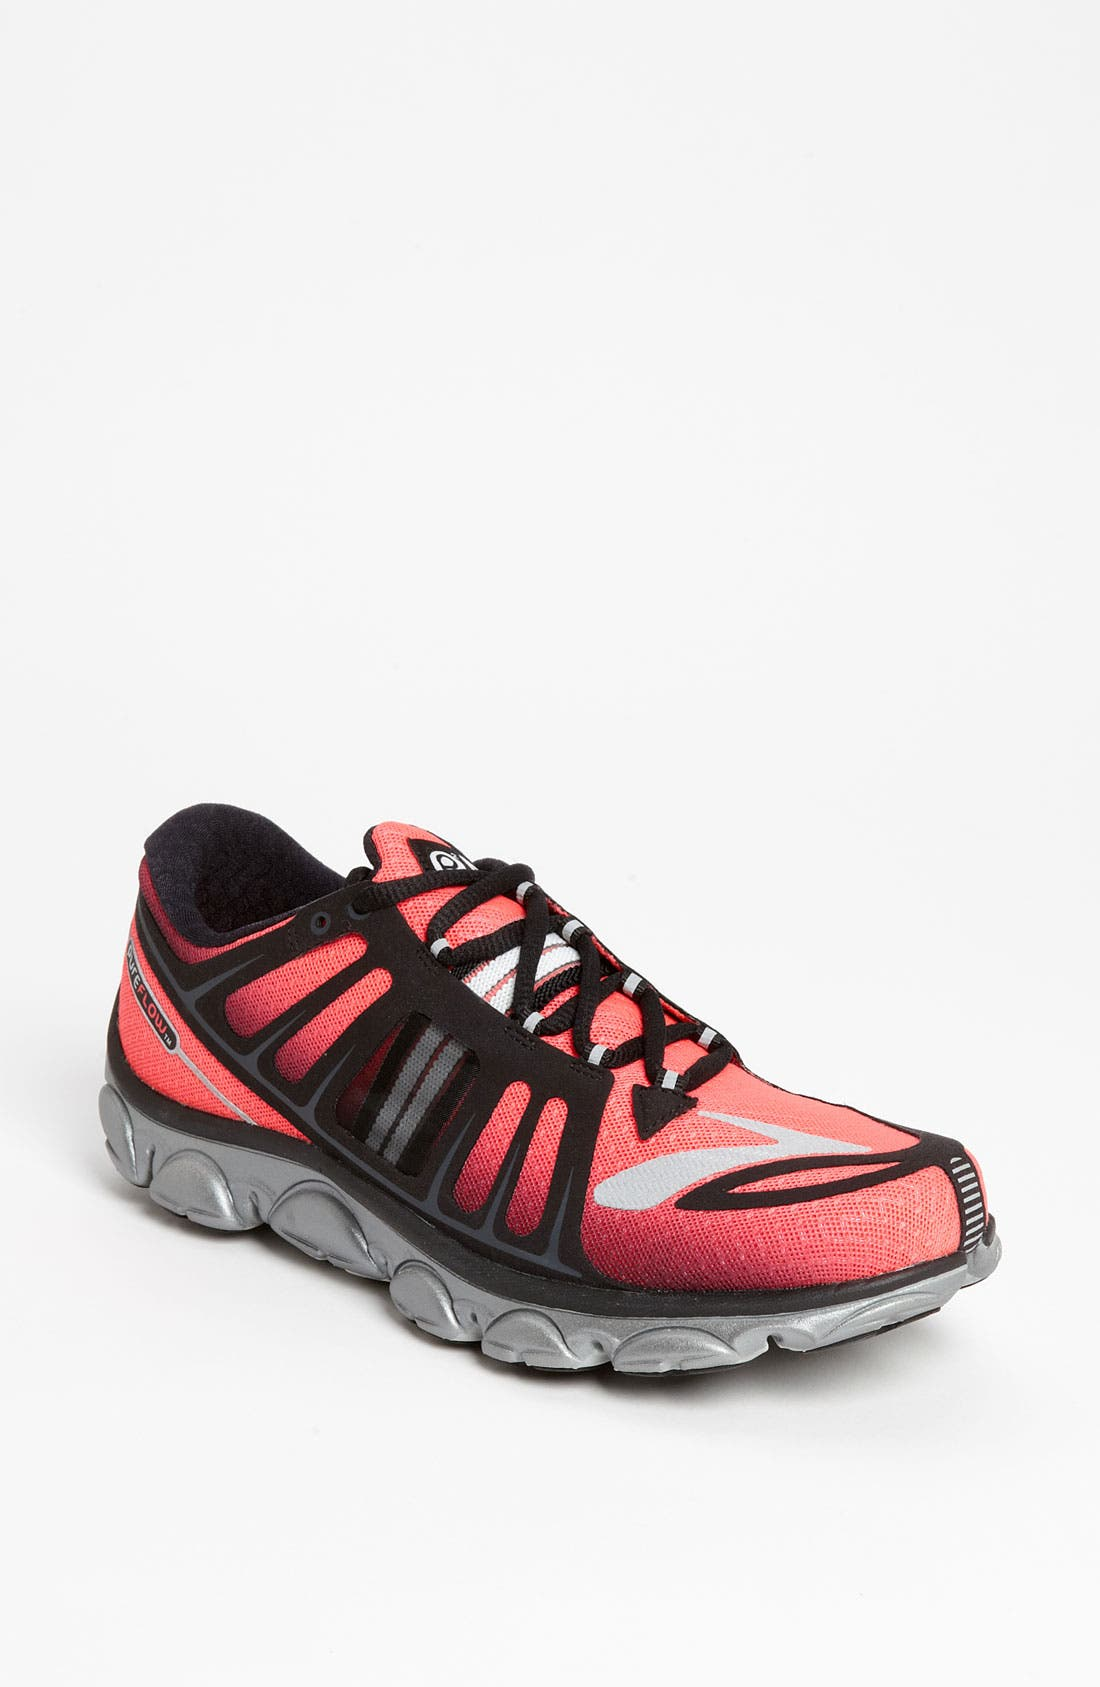 Alternate Image 1 Selected - Brooks 'PureFlow 2' Running Shoe (Women)(Regular Retail Price: $99.95)